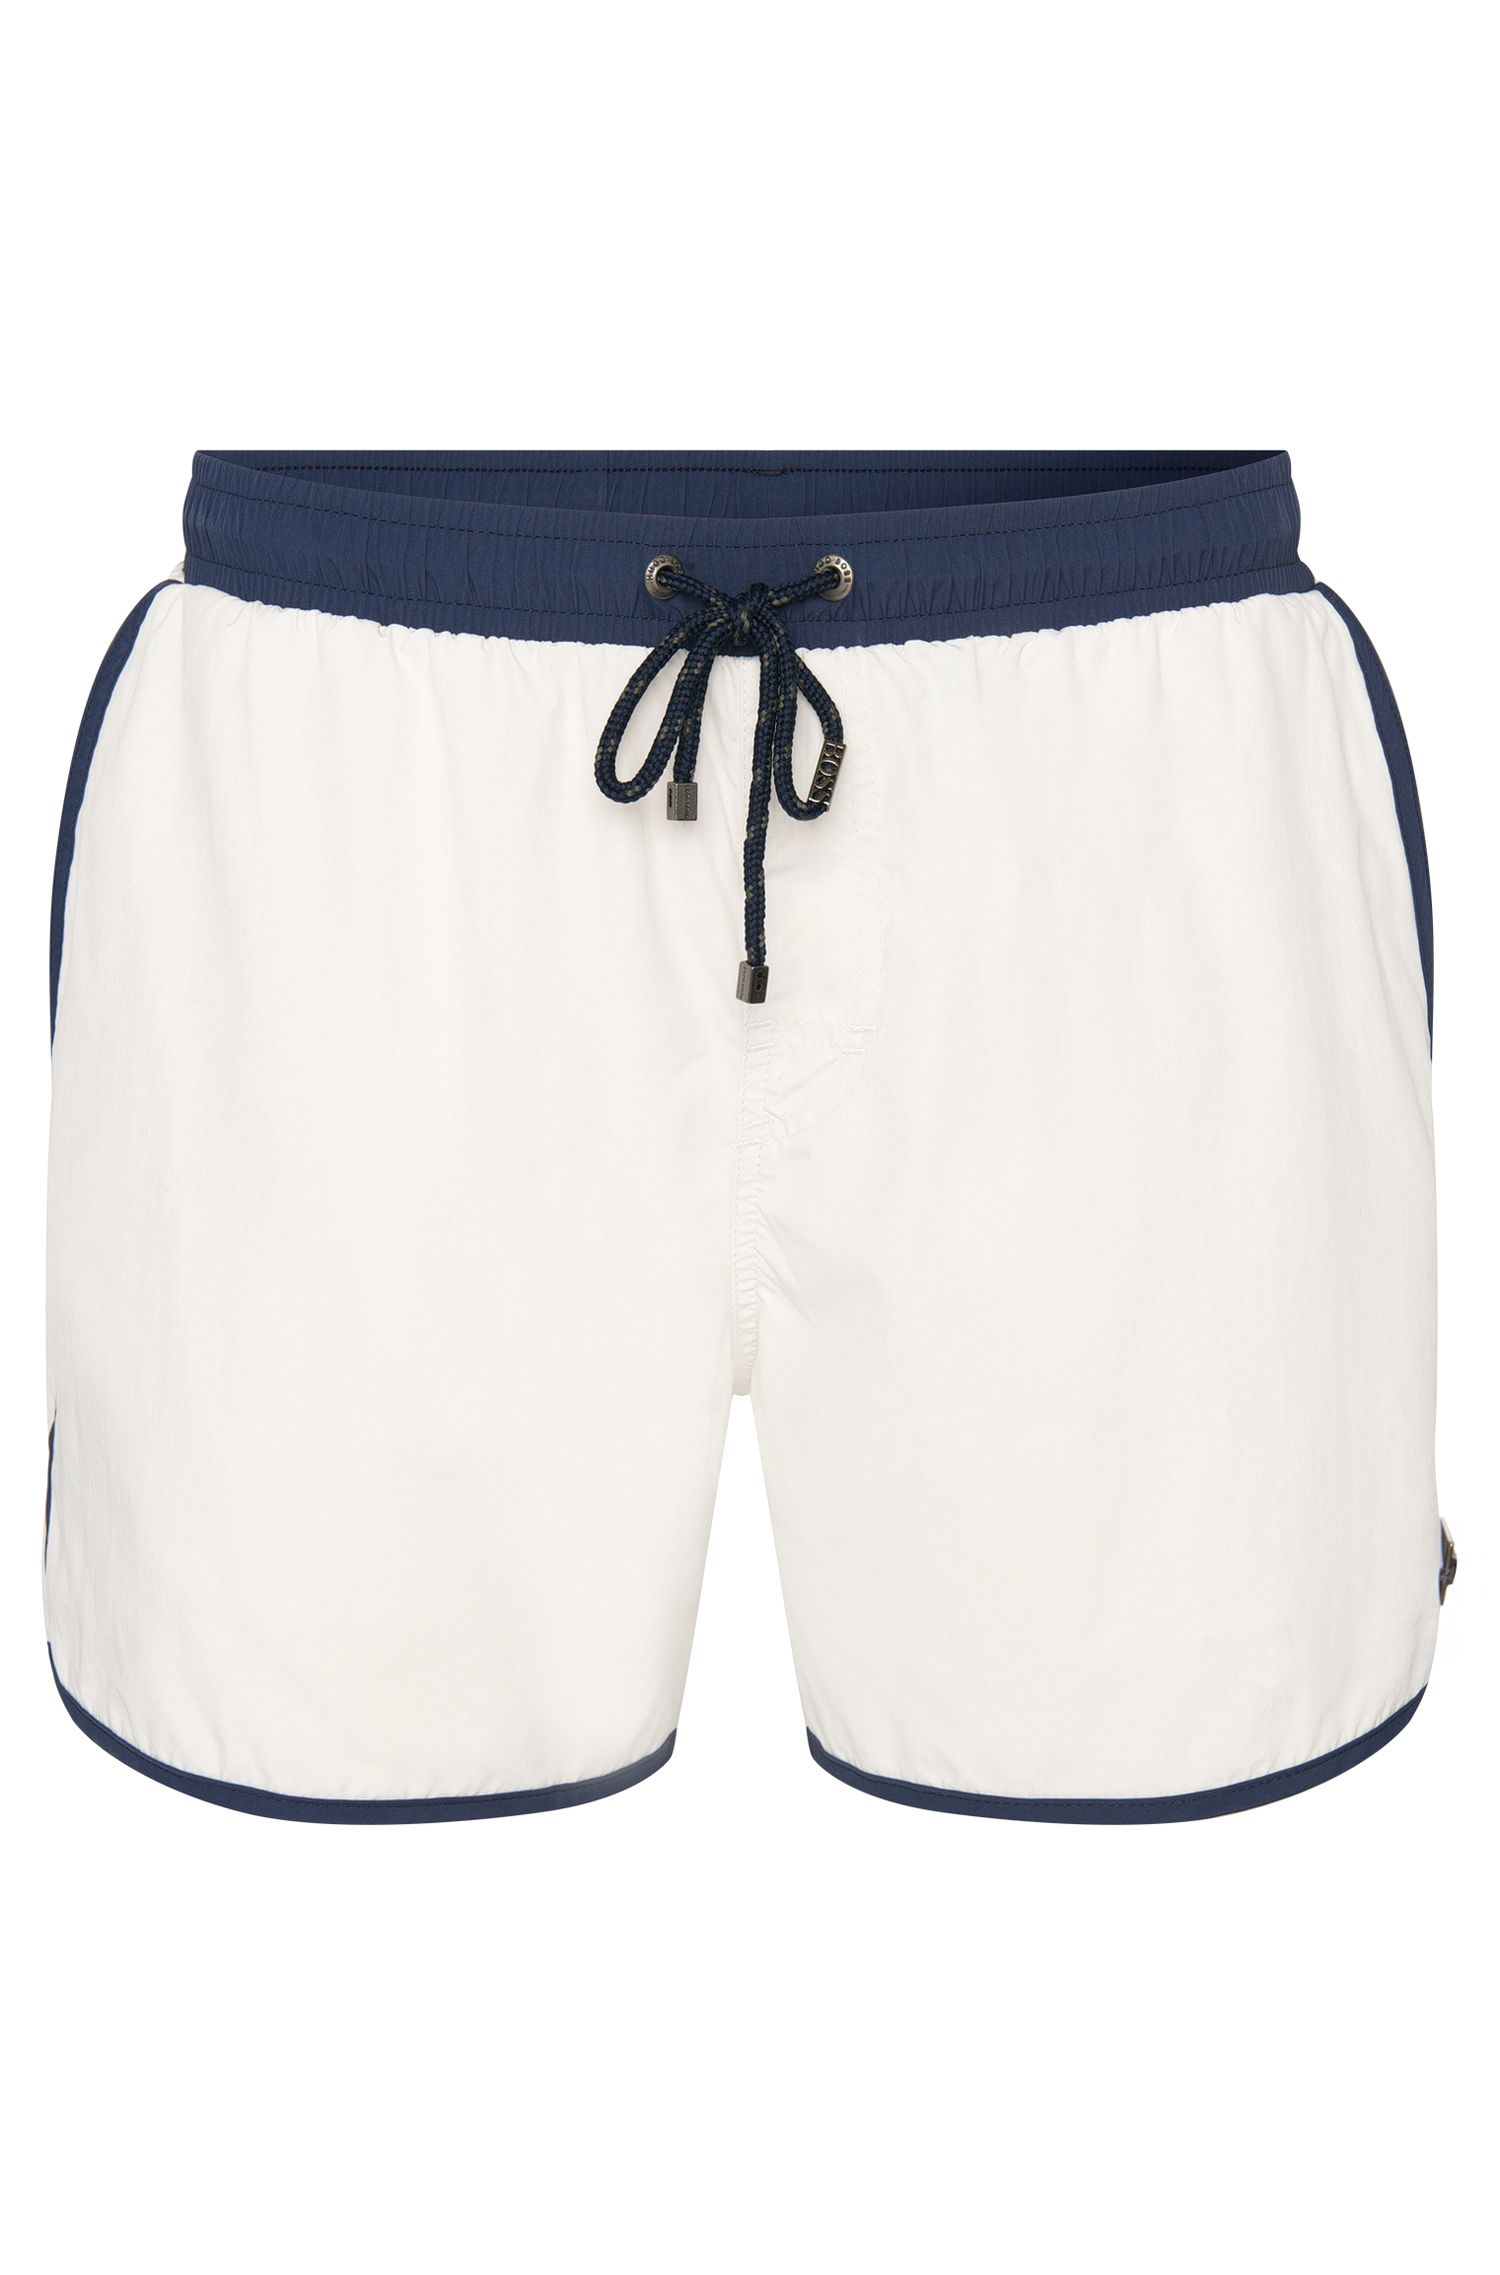 'Shellfish' | Quick Dry Colorblock Swim Trunks